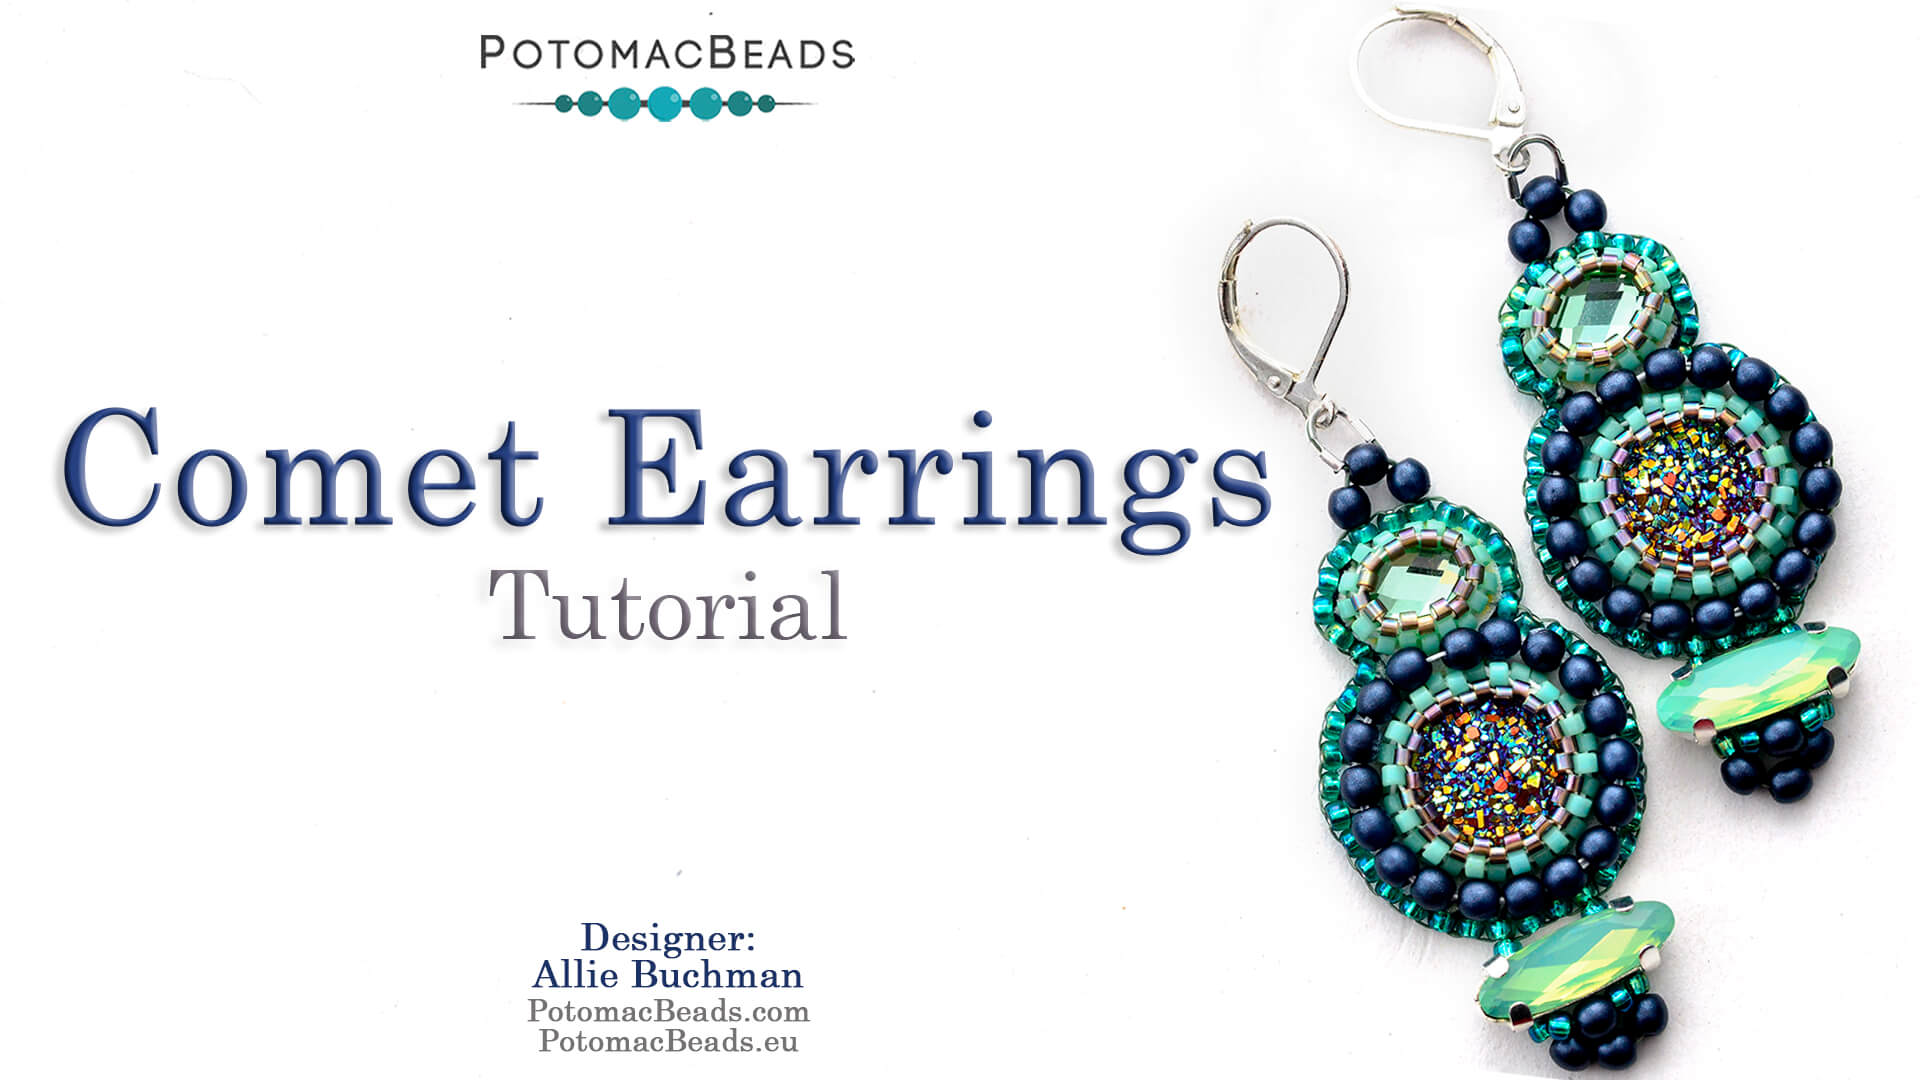 How to Bead / Videos Sorted by Beads / All Other Bead Videos / Comet Earrings Tutorial